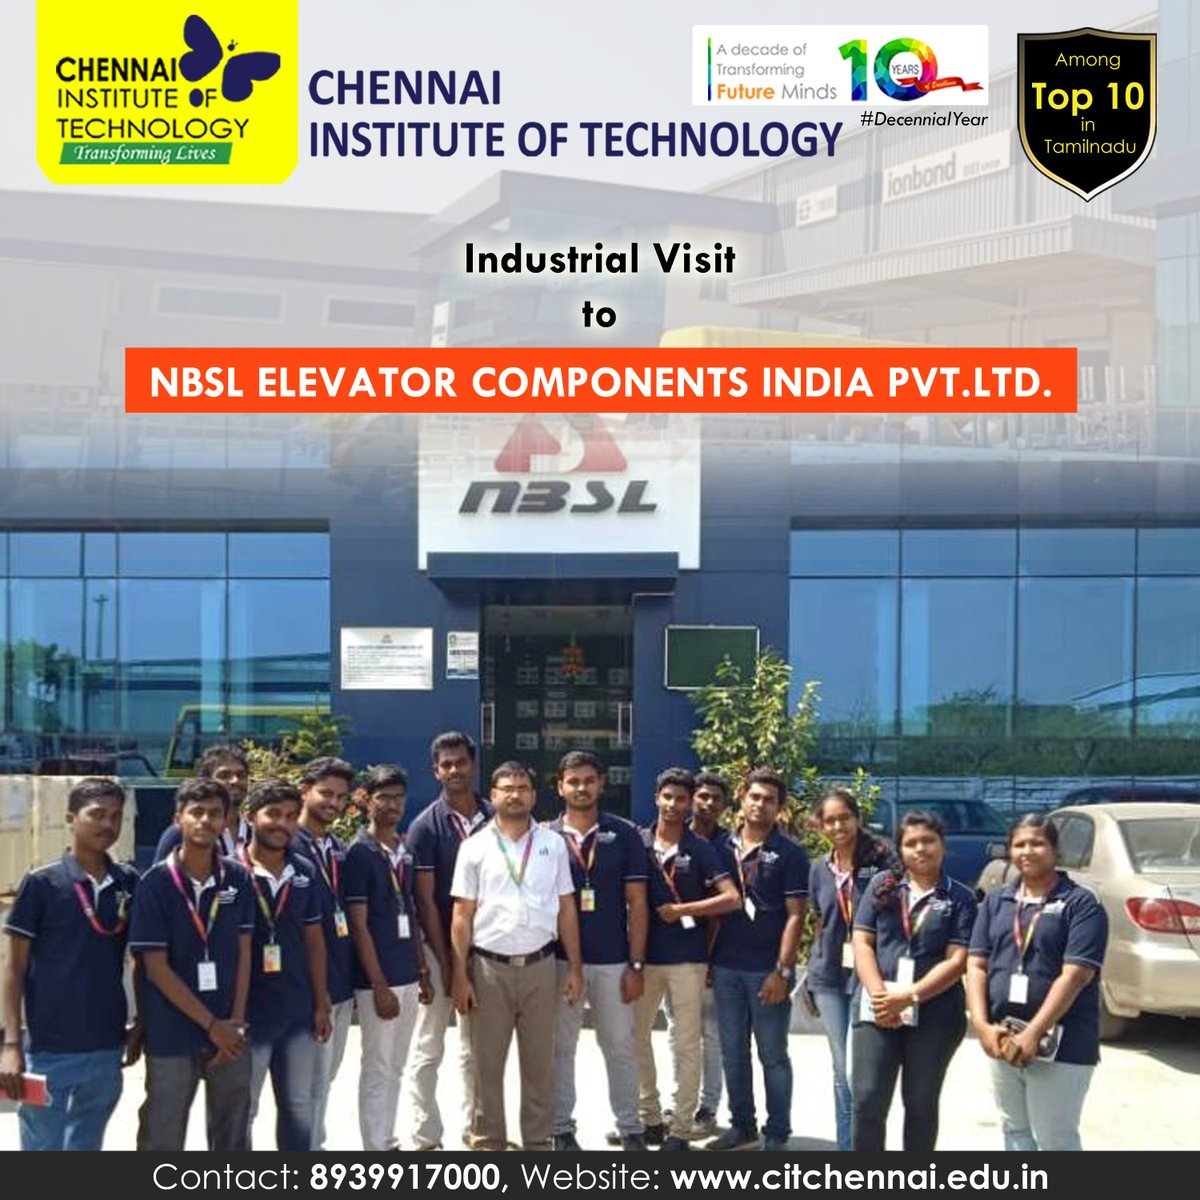 Industrial Visit to NBSL Elavator Components India Ltd. is  organised for Second Year Students by Department of Electrical and Electronics Engineering on 13th Feb, 2020  #IndustryConnectedInstitute #IndustrialVisit #ChennaiInstituteofTechnology #CITChennai #TransformingLivespic.twitter.com/pDK2PRxN5l